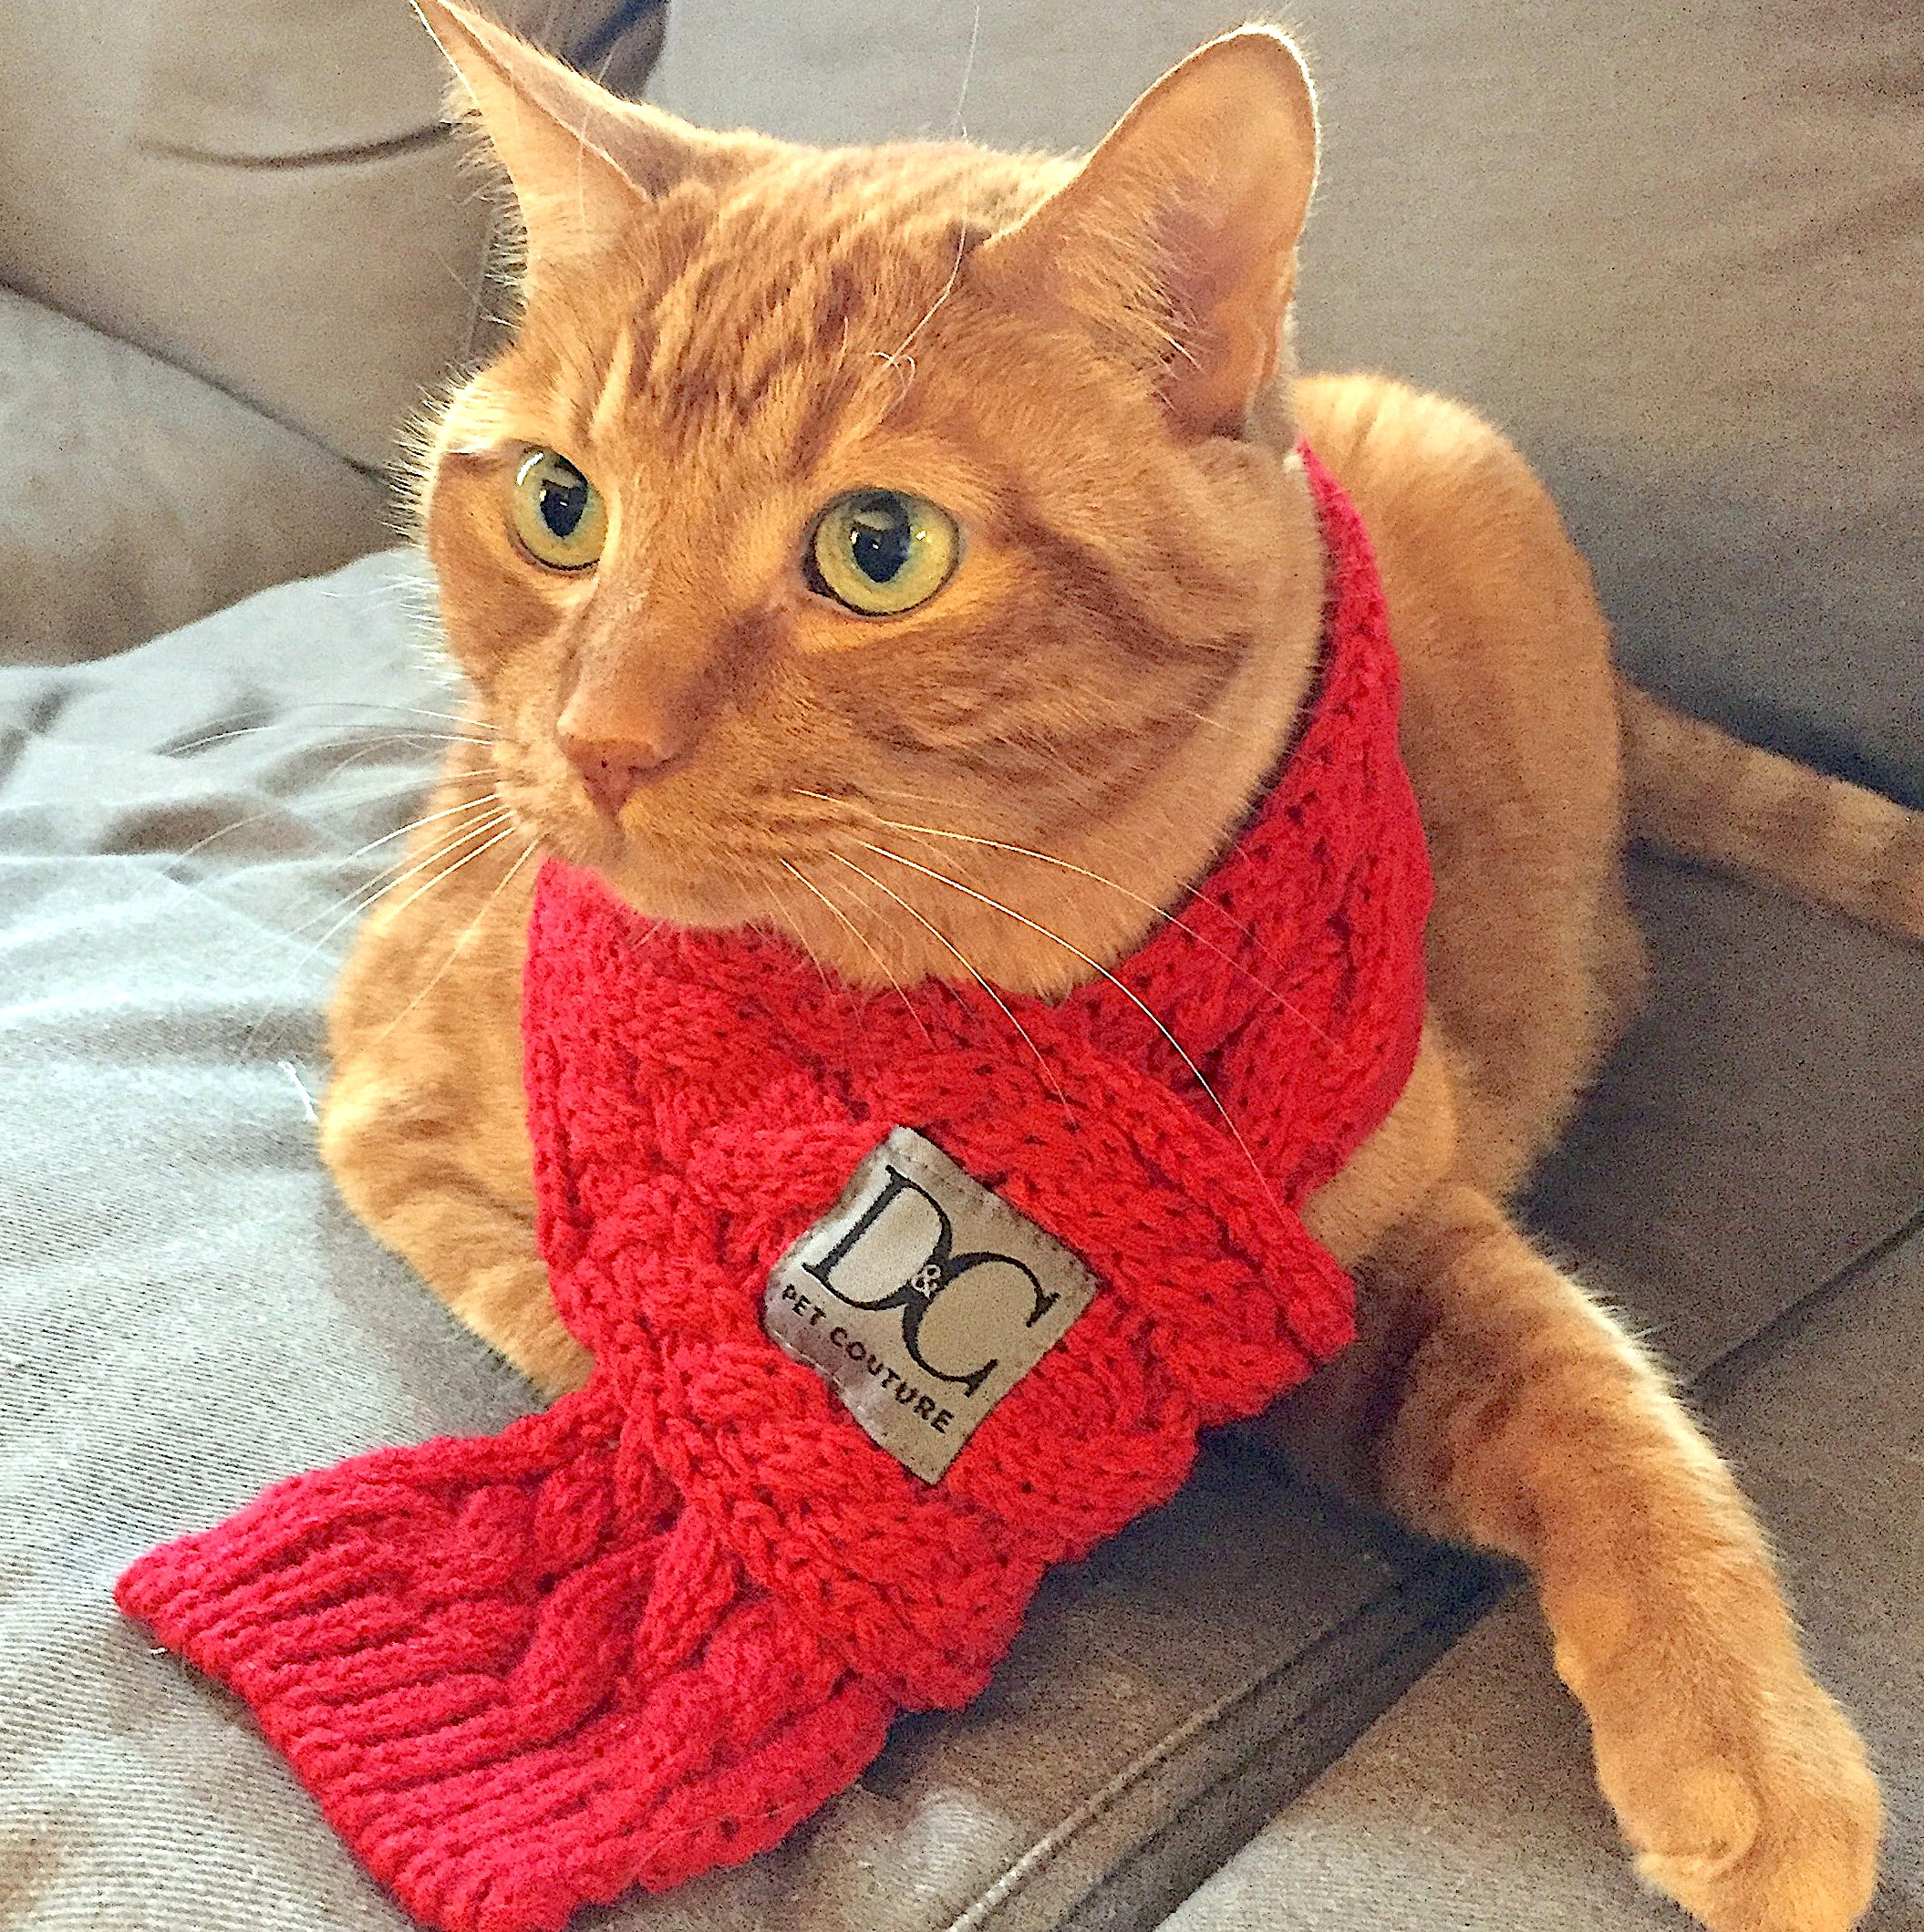 Cat in Red Scarf Square.JPG